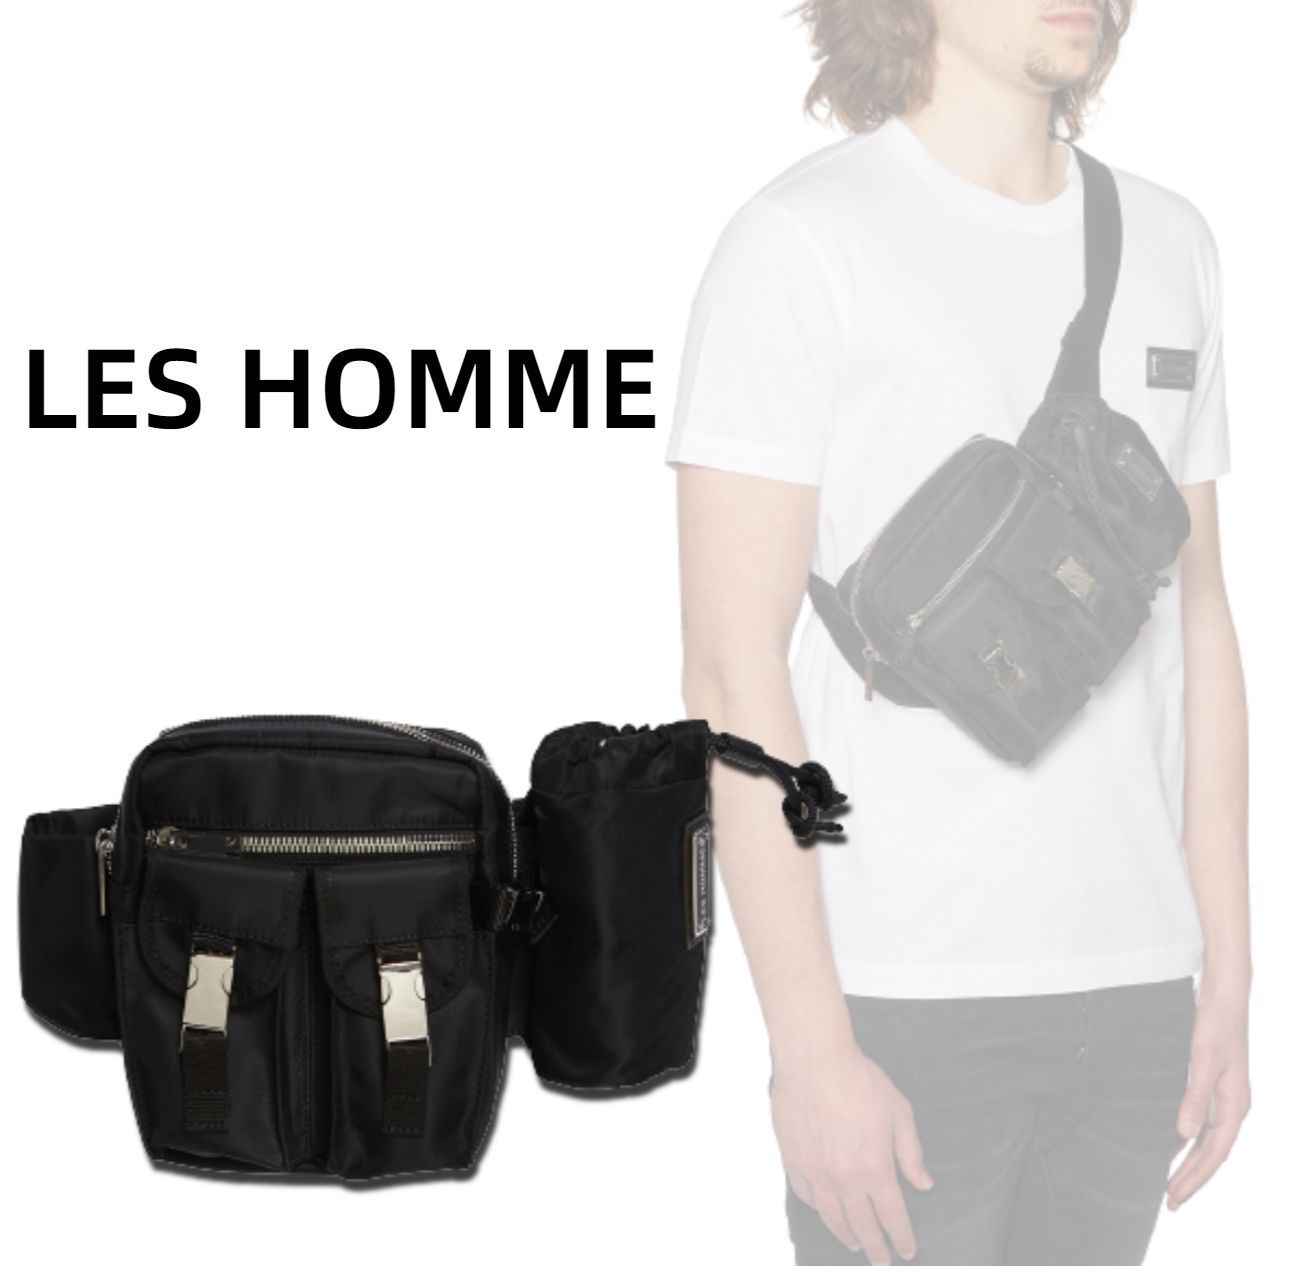 《LES HOMME》メタルロゴ クロスボディバッグ☆国内発送&関税込 (LES HOMMES/バッグ・カバンその他) 68485370